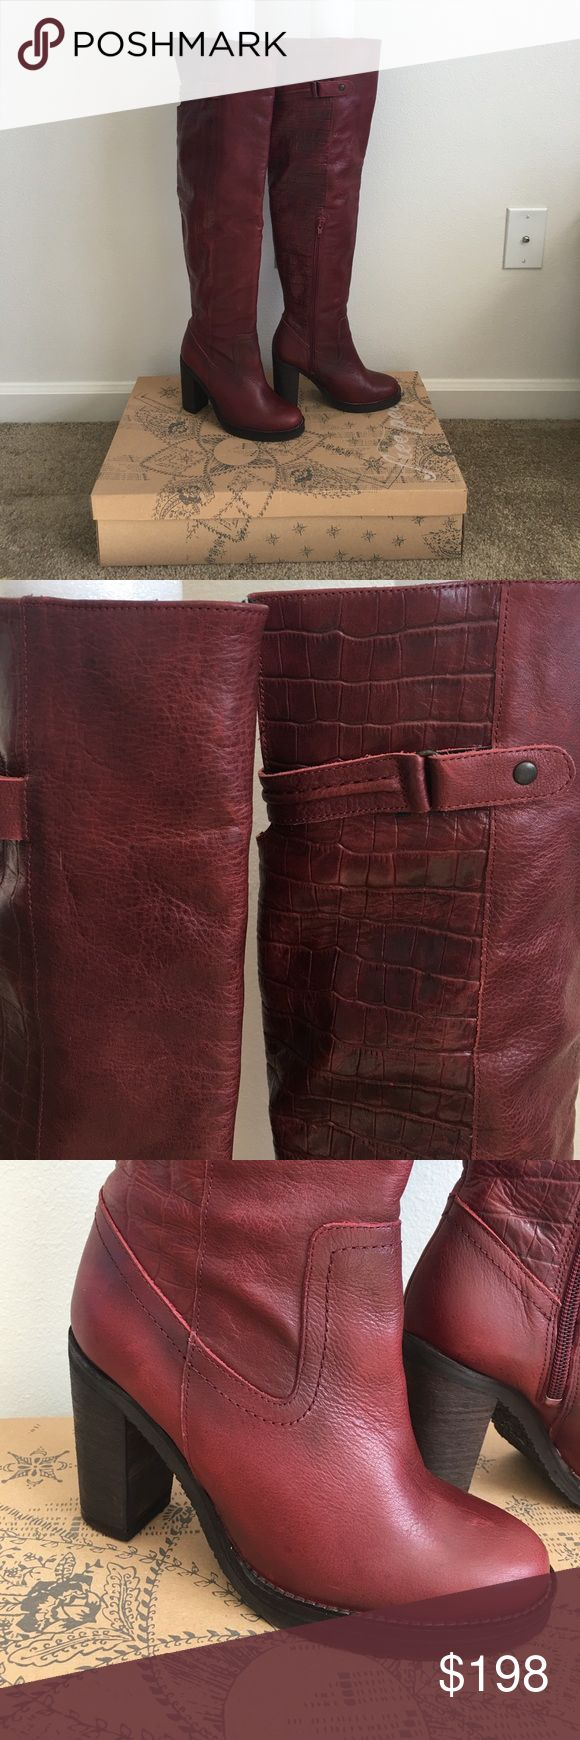 Free People Over the Knee Red Boots Gorgeous multi texture leather boots in a gorgeous deep red shade. Only worn once because they are a bit snug on me! Definitely fit tts. Come in original box. Free People Shoes Over the Knee Boots